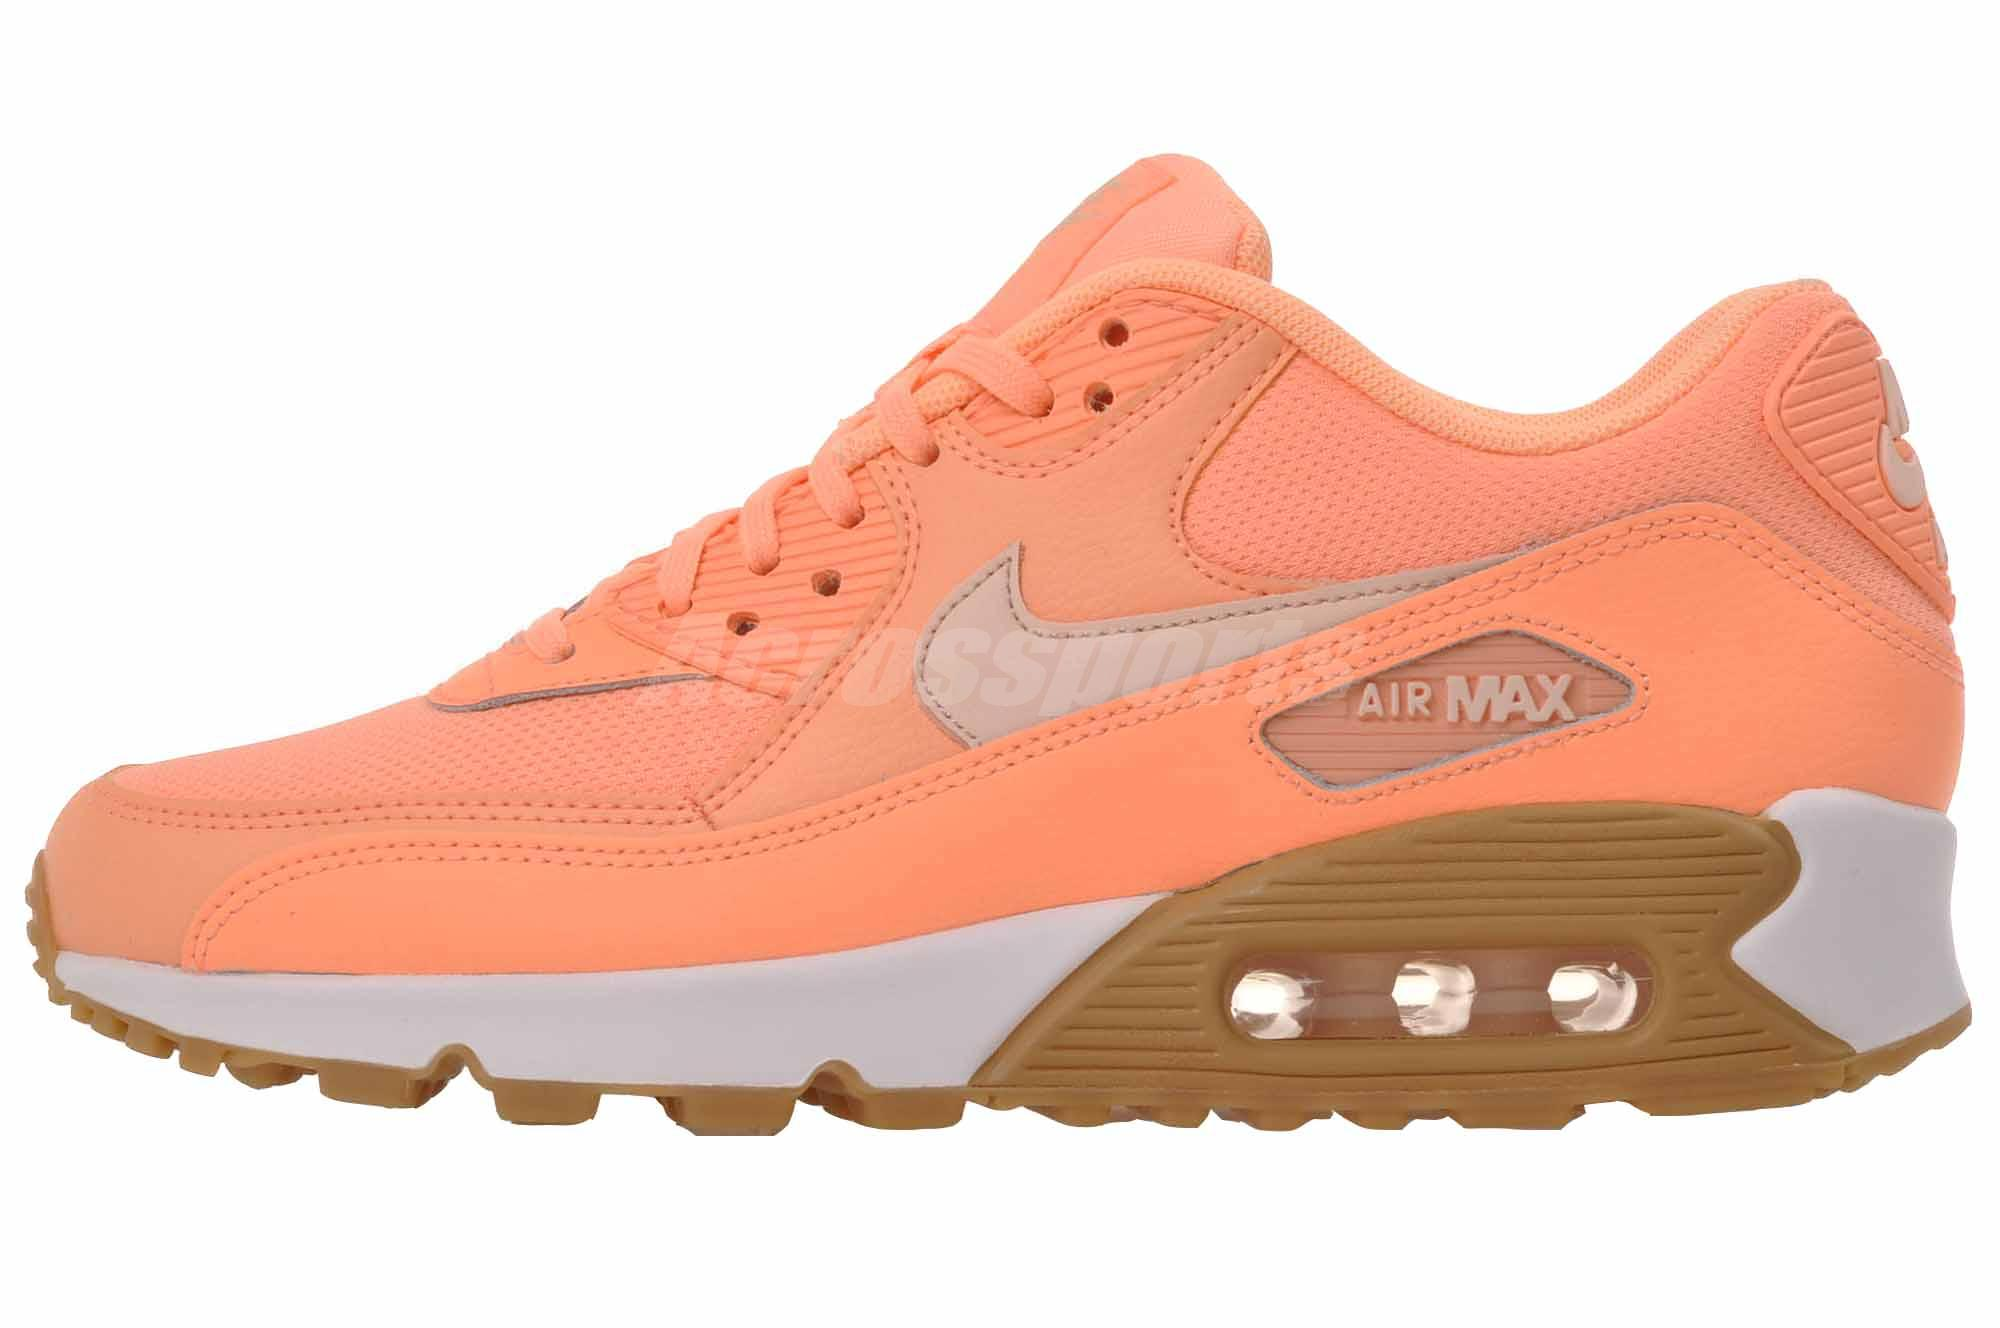 low priced 1ea5b 11800 ... Nike Wmns Air Max 90 Running Womens Shoes Sunset Glow 325213-802 ...